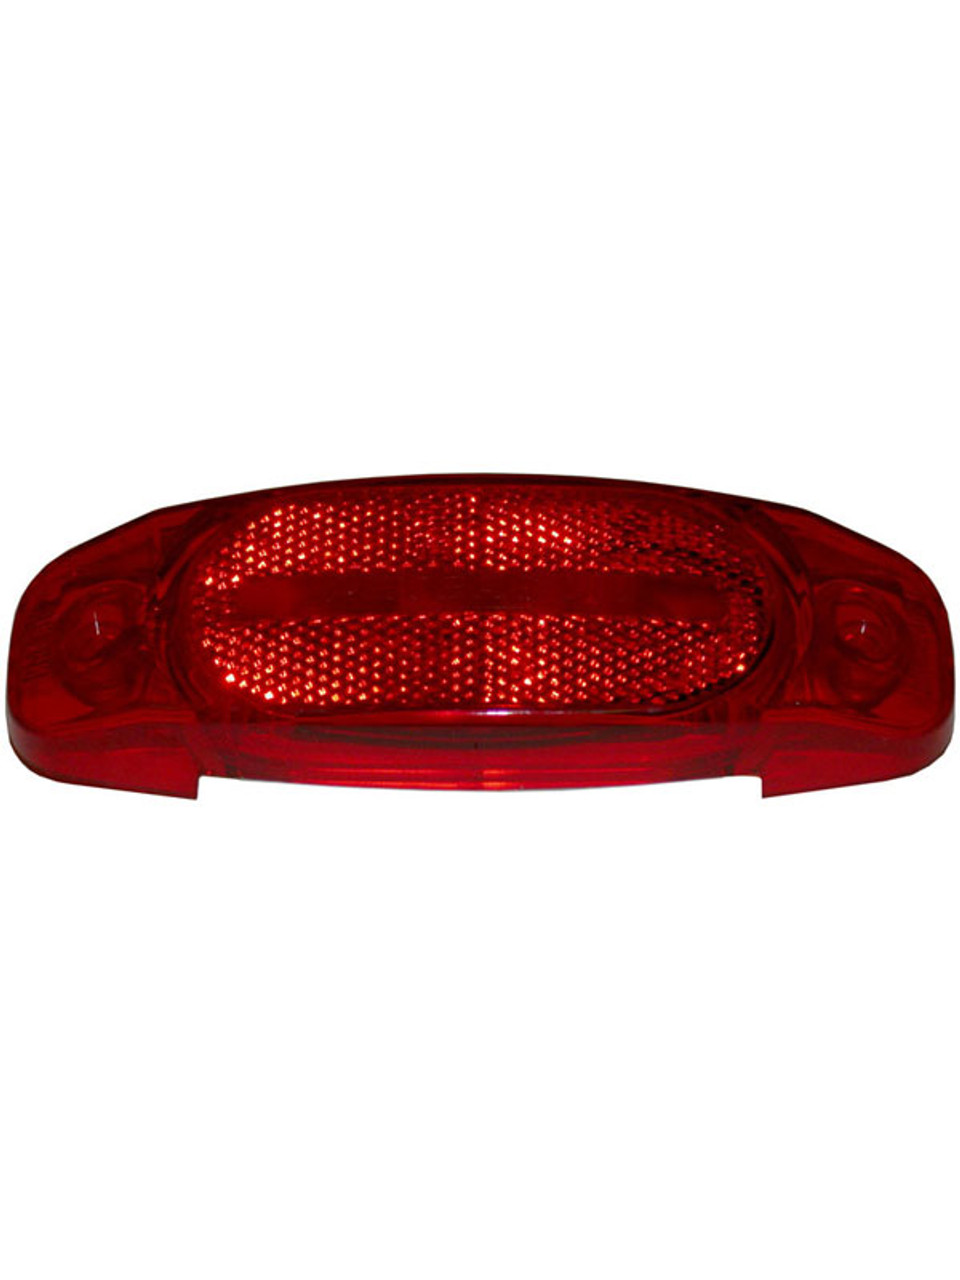 130-25R --- Peterson Replacement Red Oval Lens with Reflector